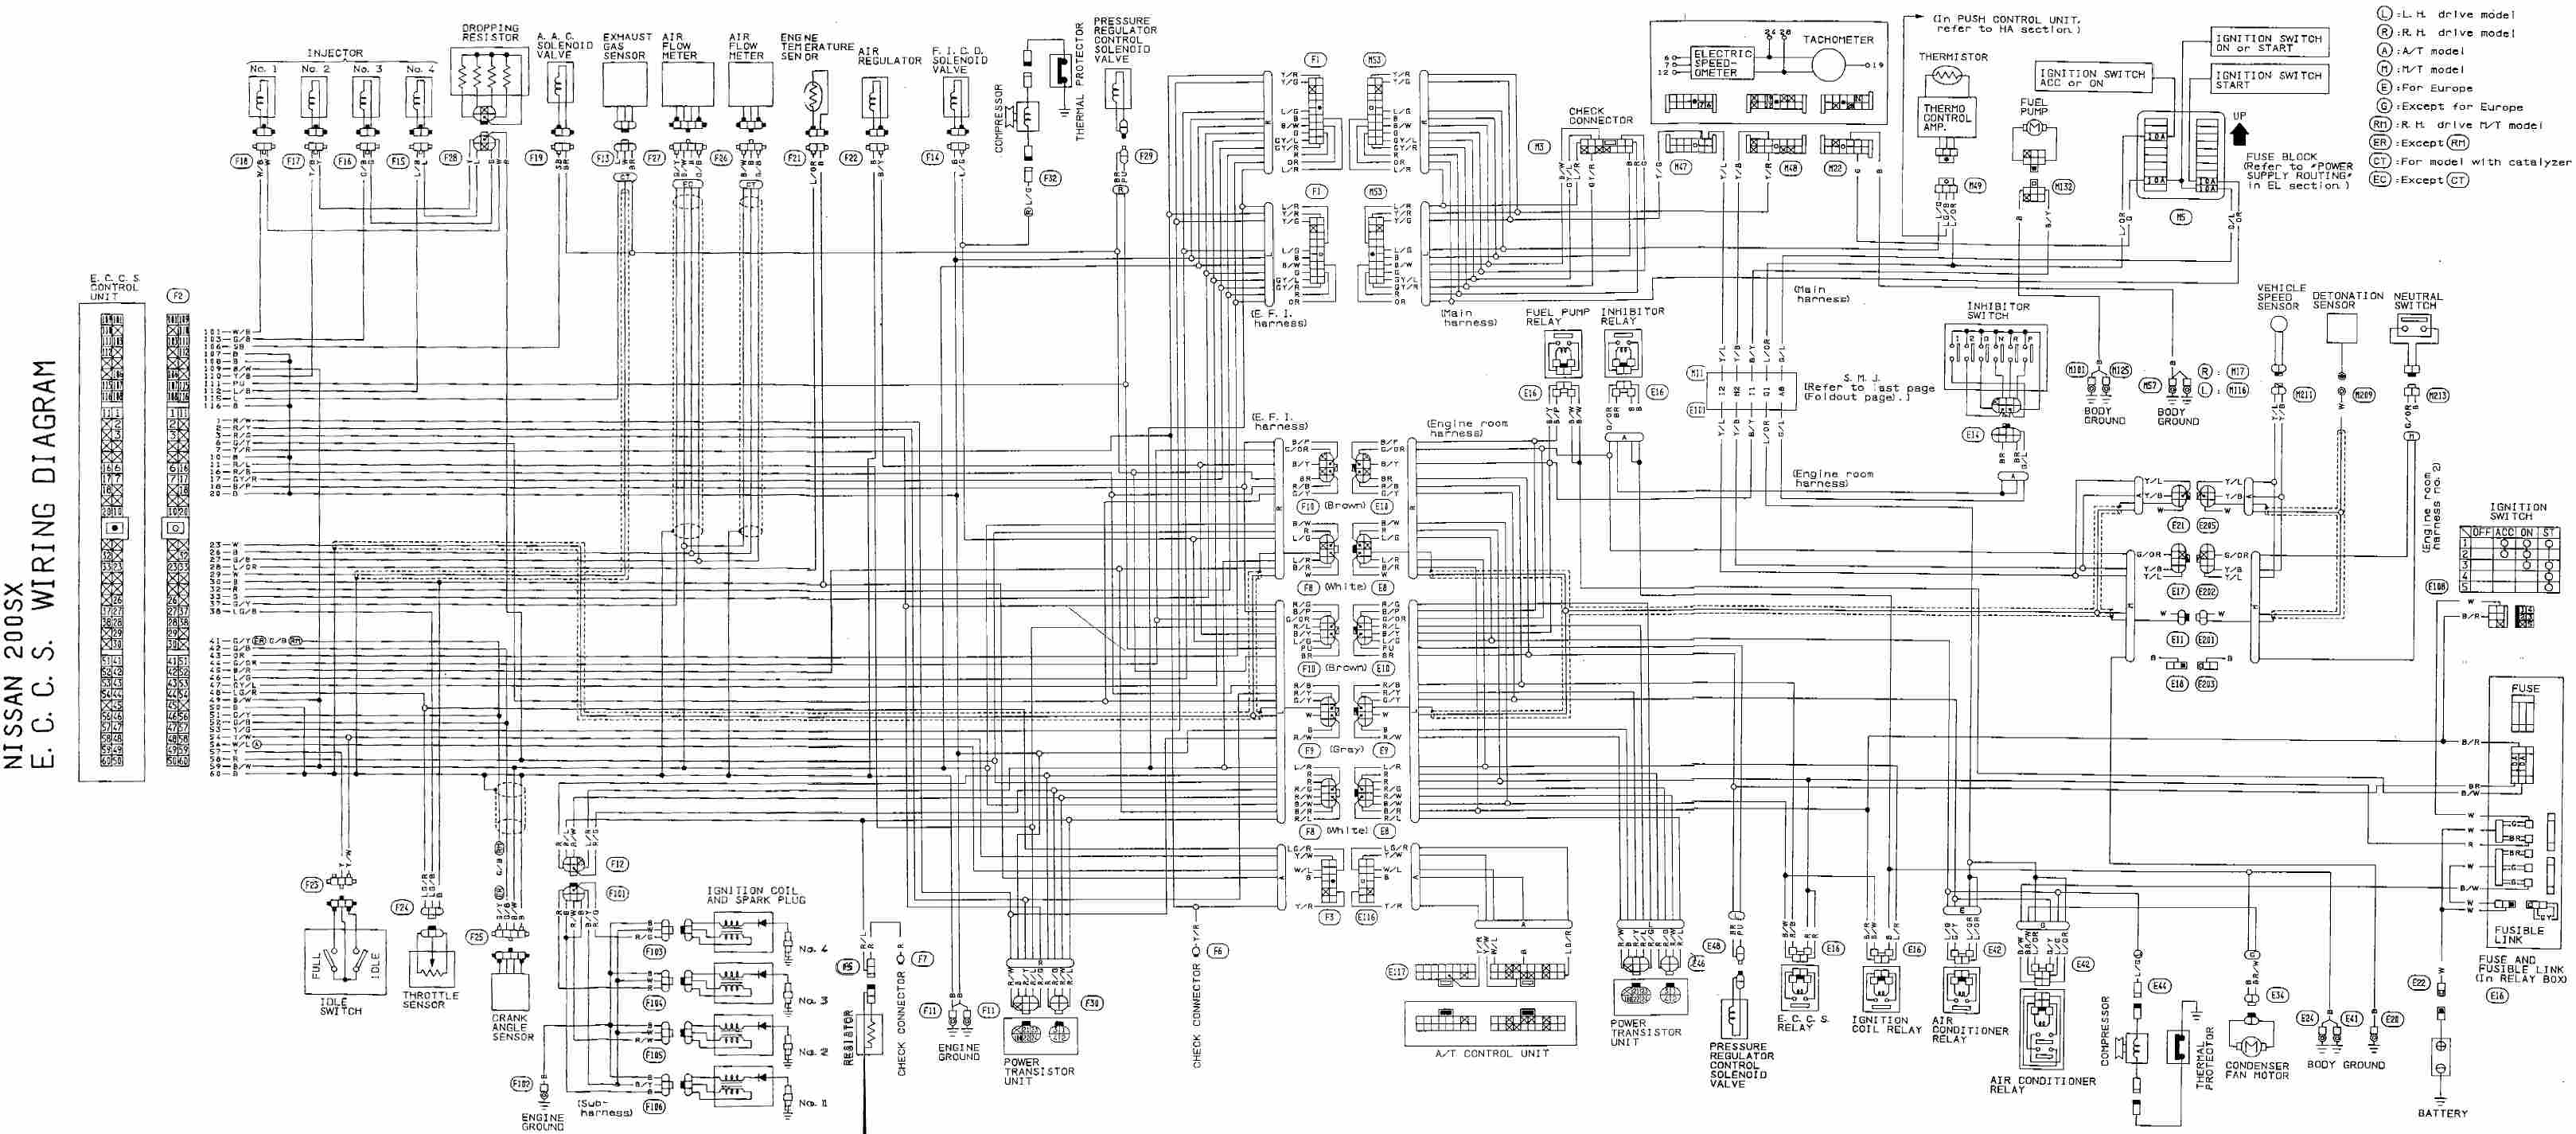 complete eccs wiring diagram of nissan 200x?t\=1508500919 300zx wiring diagram 300zx engine wiring diagram \u2022 wiring diagrams E-TEC L91 Wiring-Diagram at mifinder.co